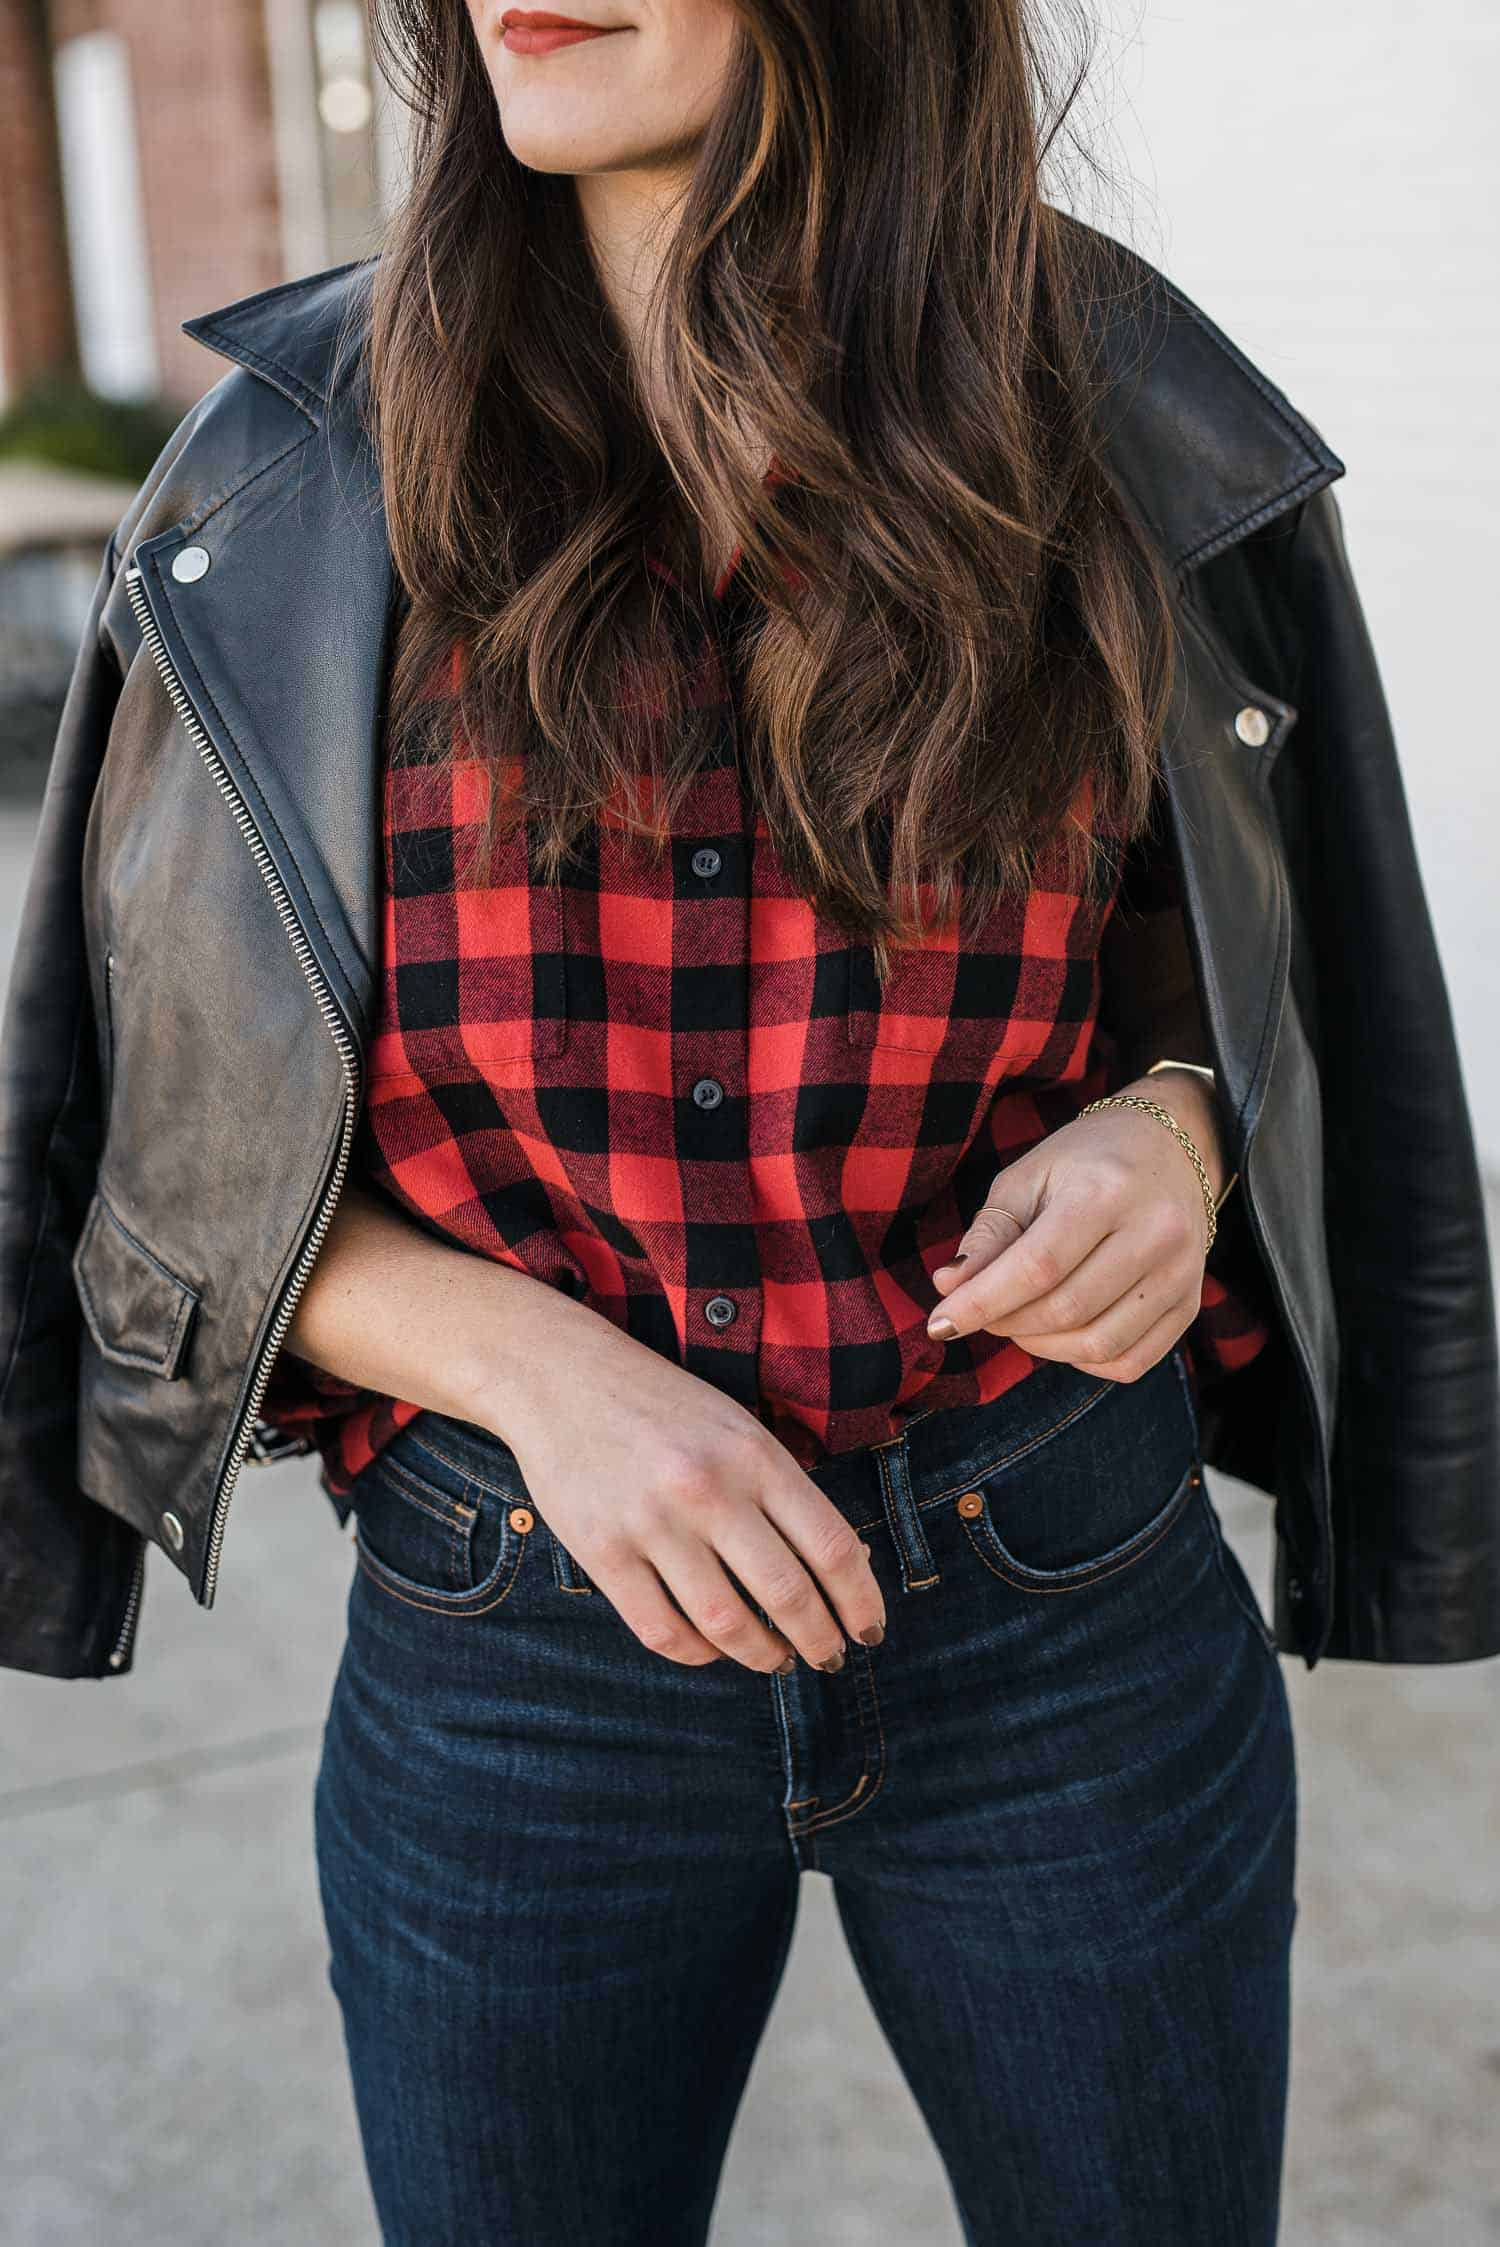 MY STYLE VITA OUTFIT DETAILS: MADEWELL PLAID SHIRT, LEATHER JACKET,  MADEWELL JEANS